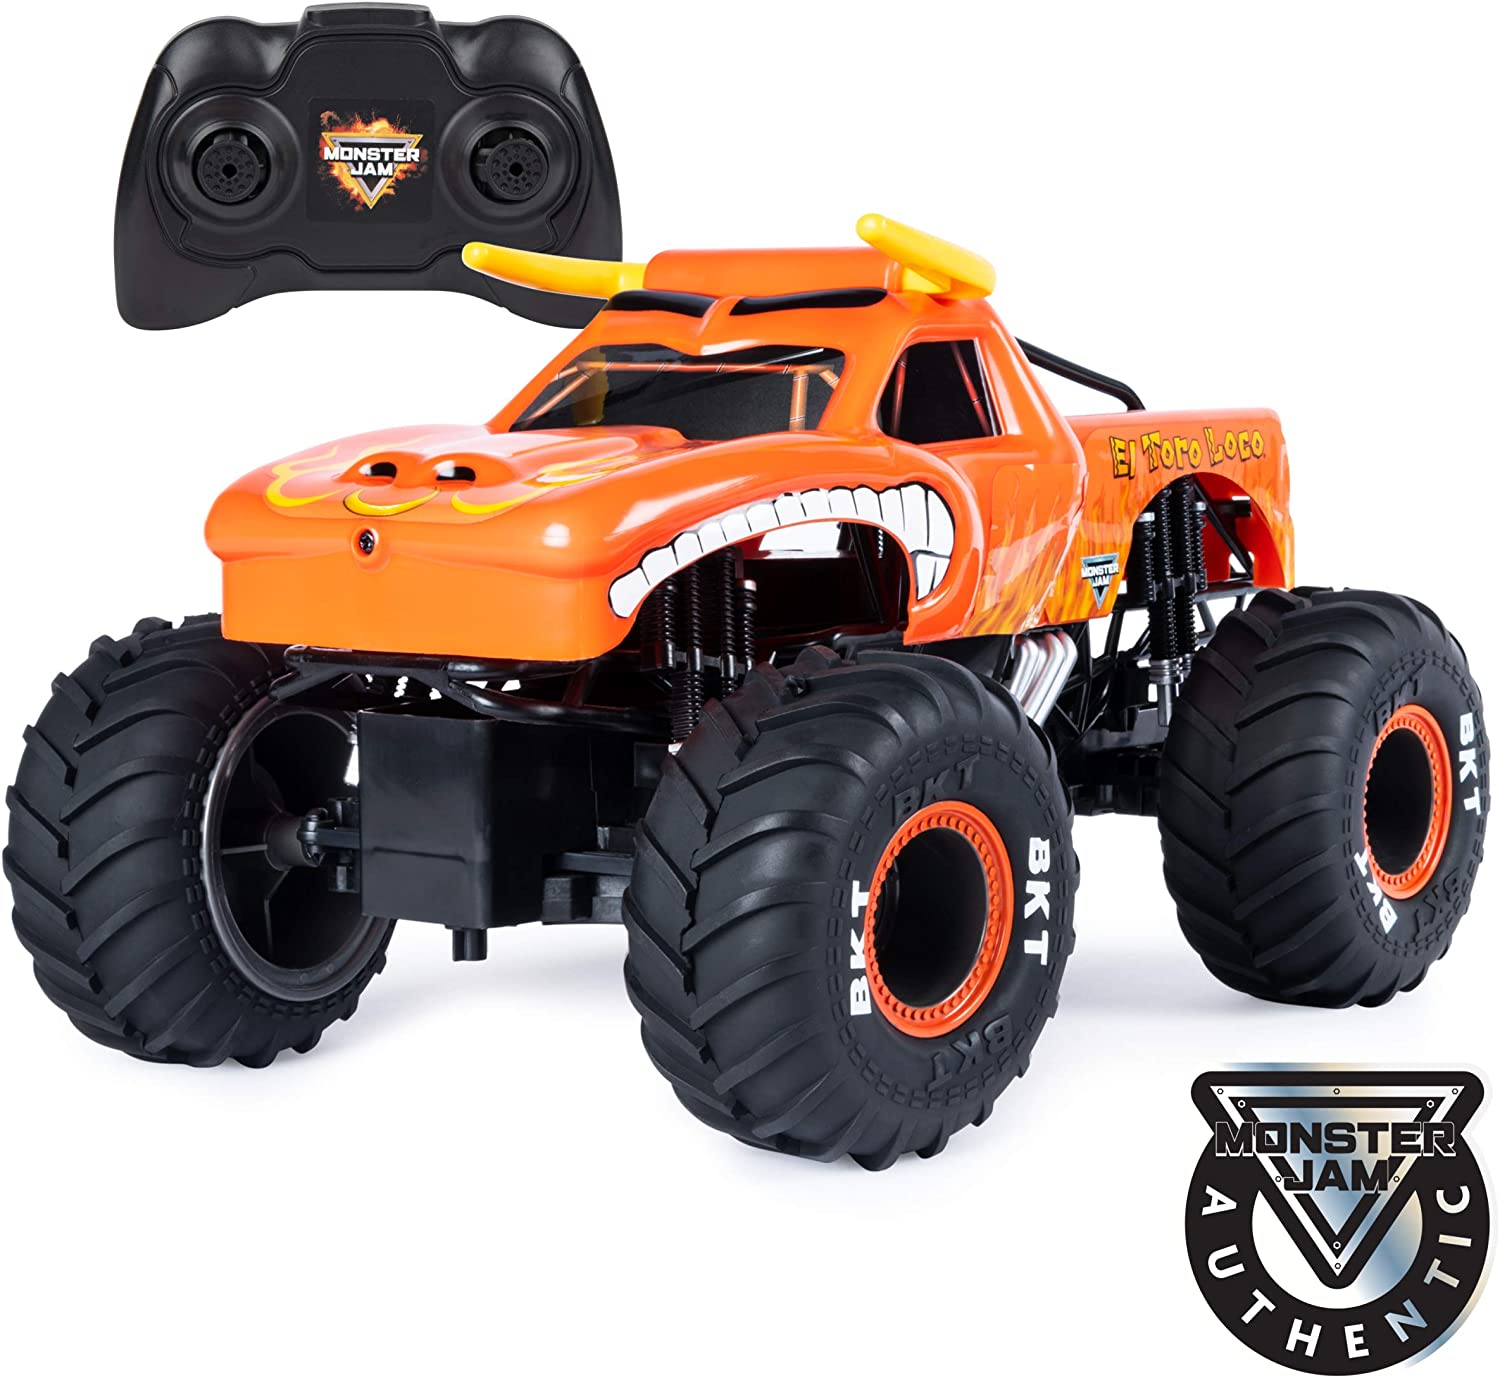 Amazon Com Monster Jam Official El Toro Loco Remote Control Monster Truck 1 15 Scale 2 4 Ghz Toys Games